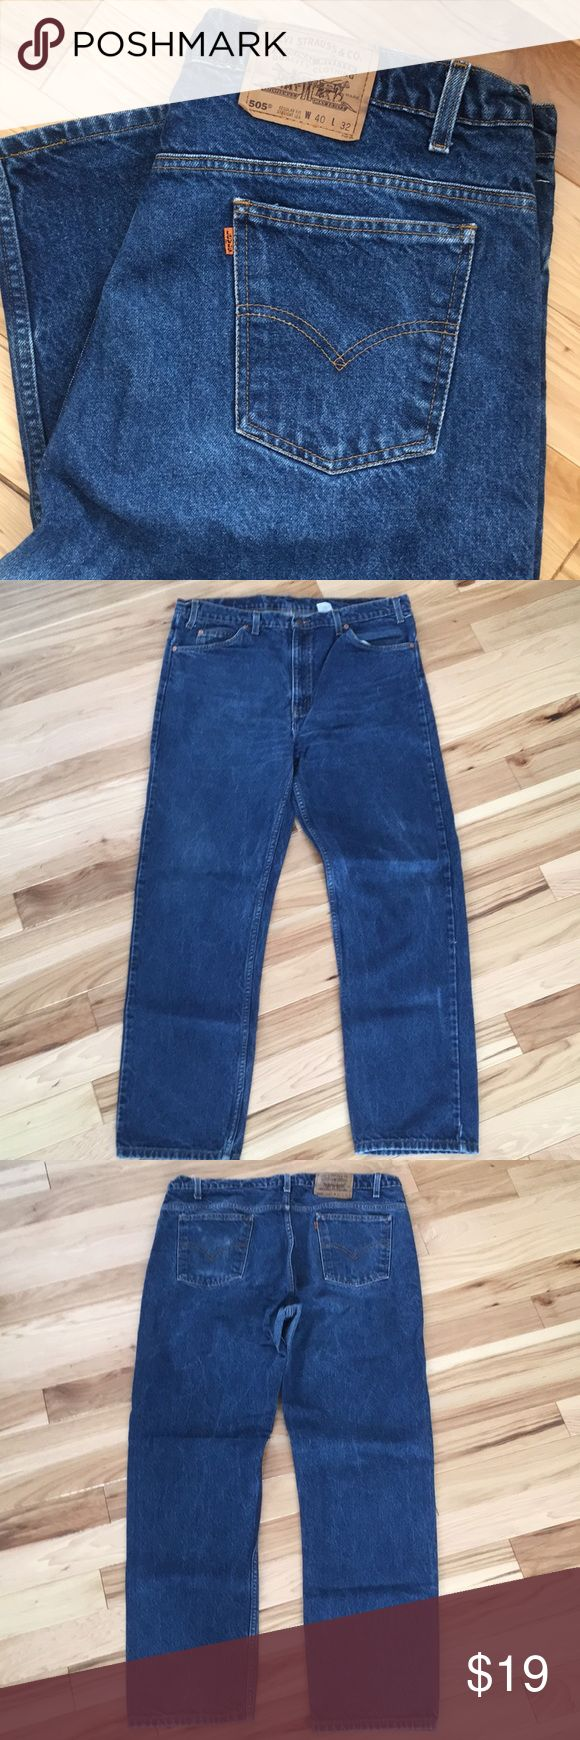 Men's 505 Levi's 40x32 Nice pair of men's Levi's 505 orange tab size 40x32, great condition. I do have 2 pairs of this size and style if there is interest will sell the second for a great deal, the second pair has some fading on one of the pockets so I will sell cheap for both! Just ask and I can post pics! Levi's Jeans Straight